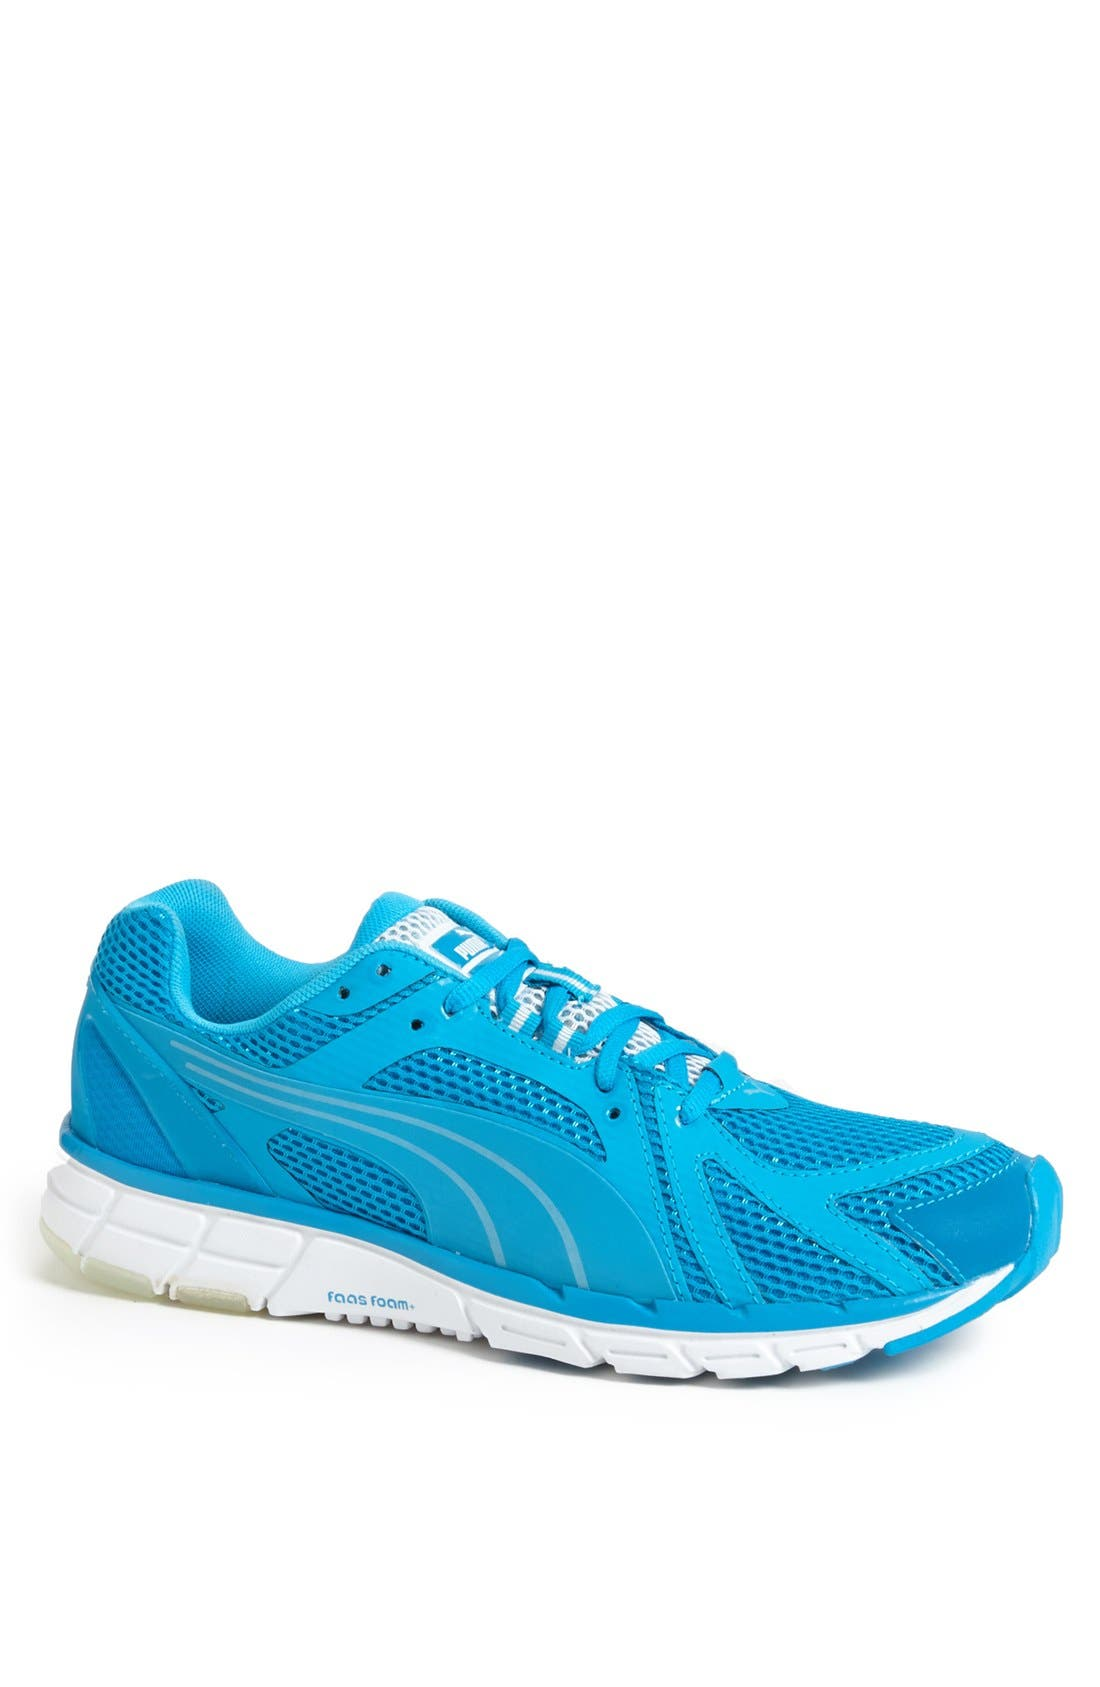 Alternate Image 1 Selected - PUMA 'Faas 600 S Glow' Running Shoe (Men)